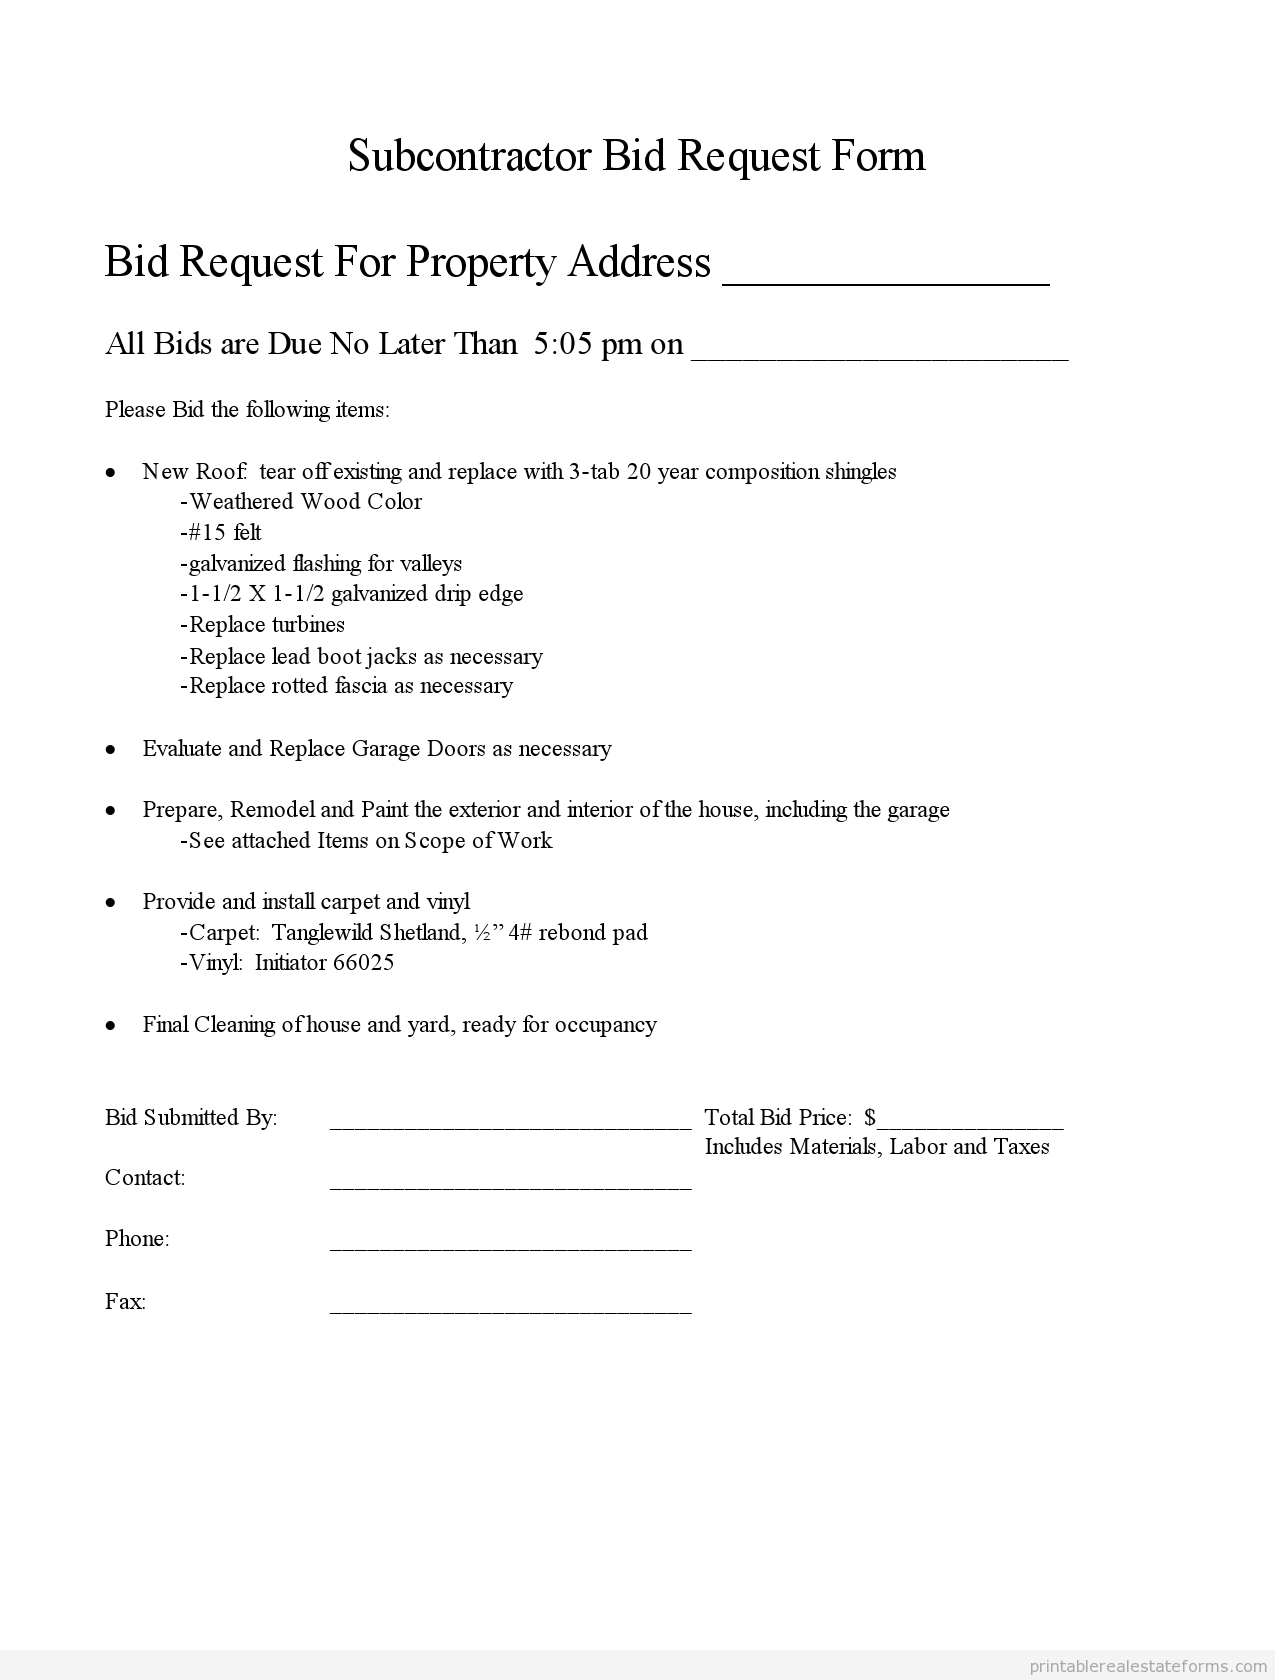 Printable Subcontractor Bid Request Form And Standardized Scope Of